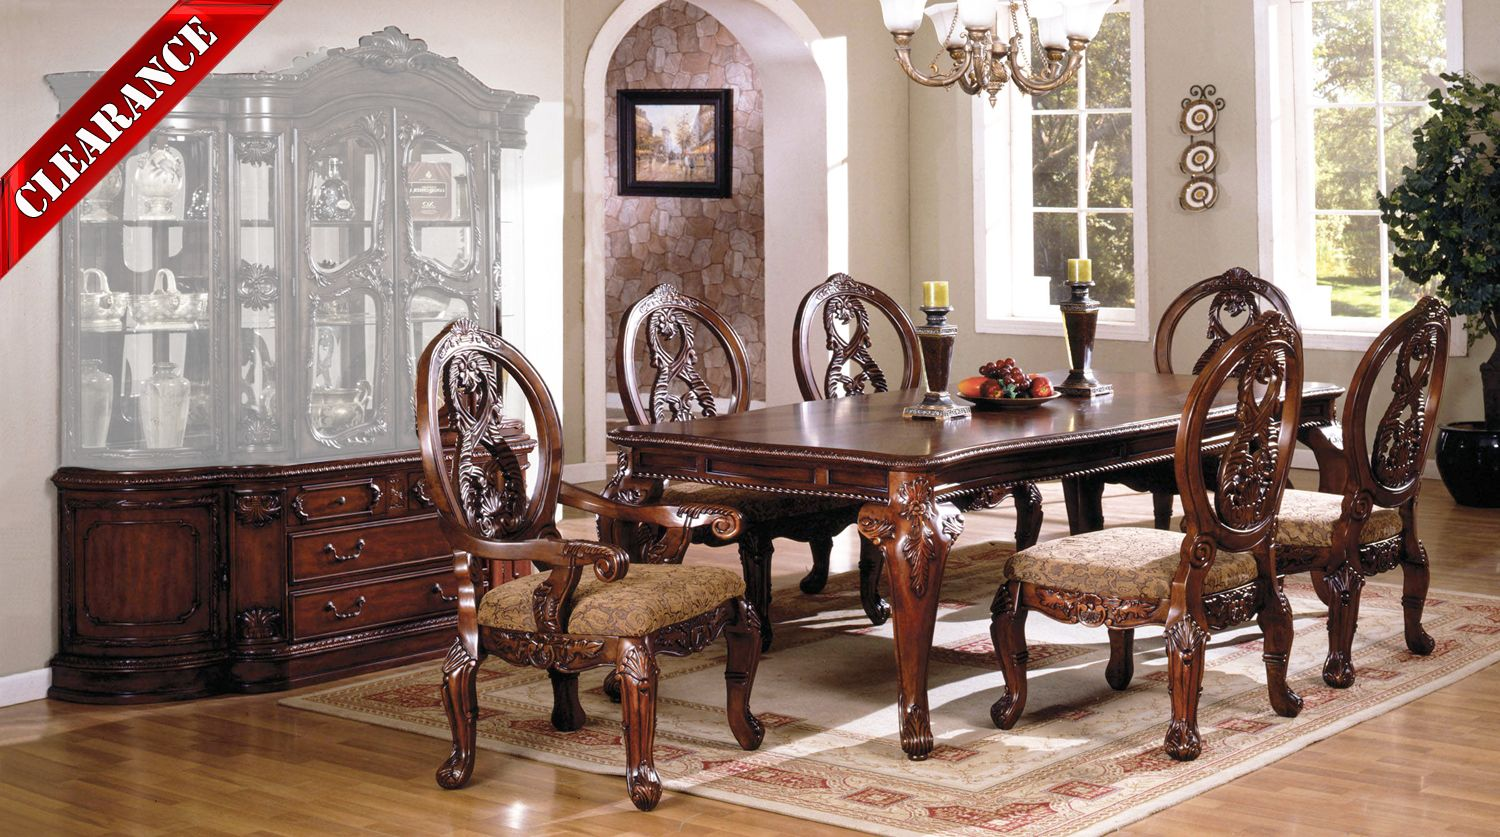 Details about Tuscany II Elegant Antique Cherry 8 pc Formal Dining Room Set  w/ Buffet